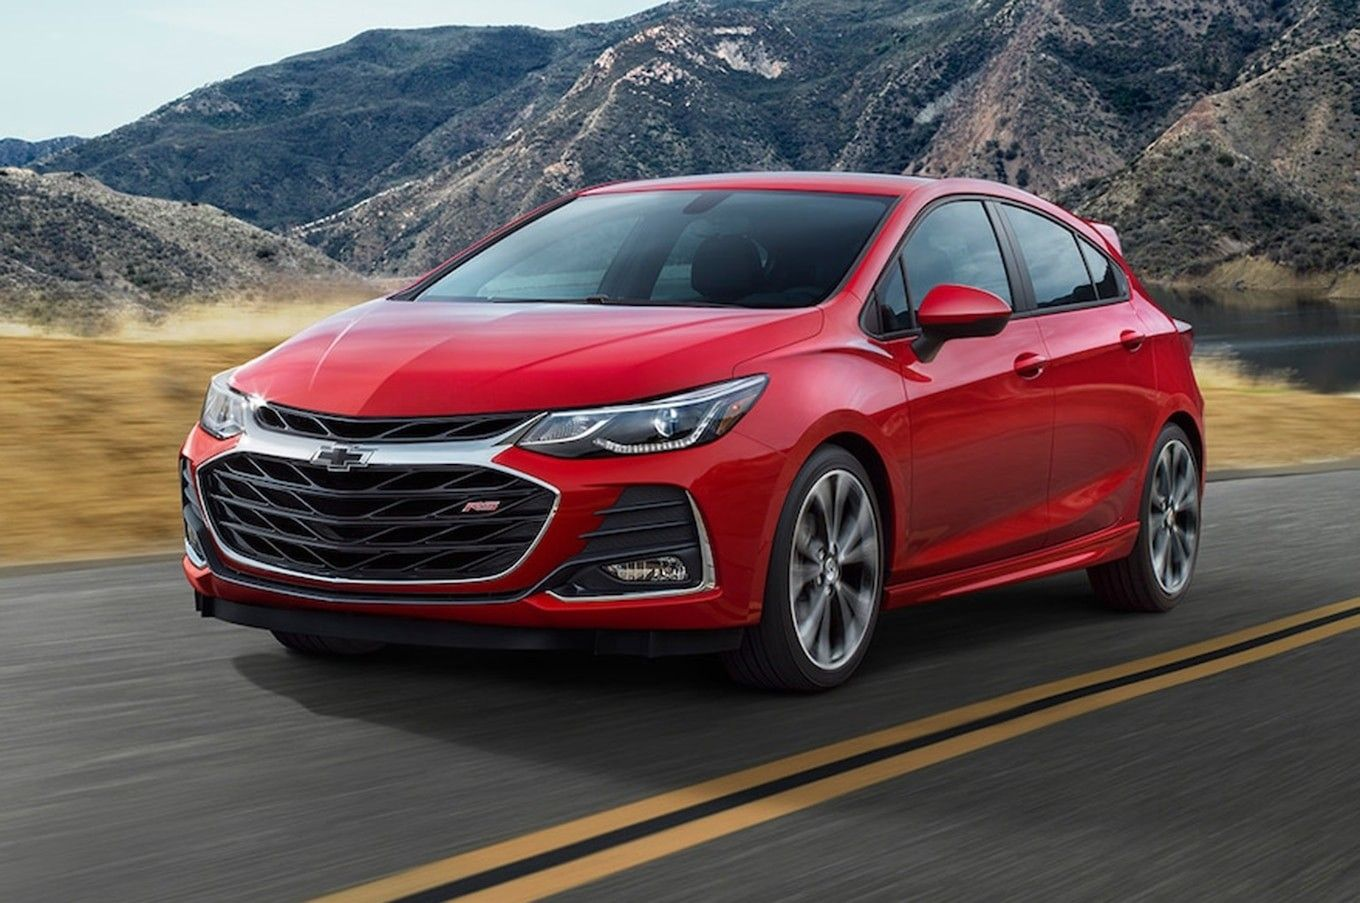 2019 Chevy Cruze Redesign, Price and Review | Chevrolet ...